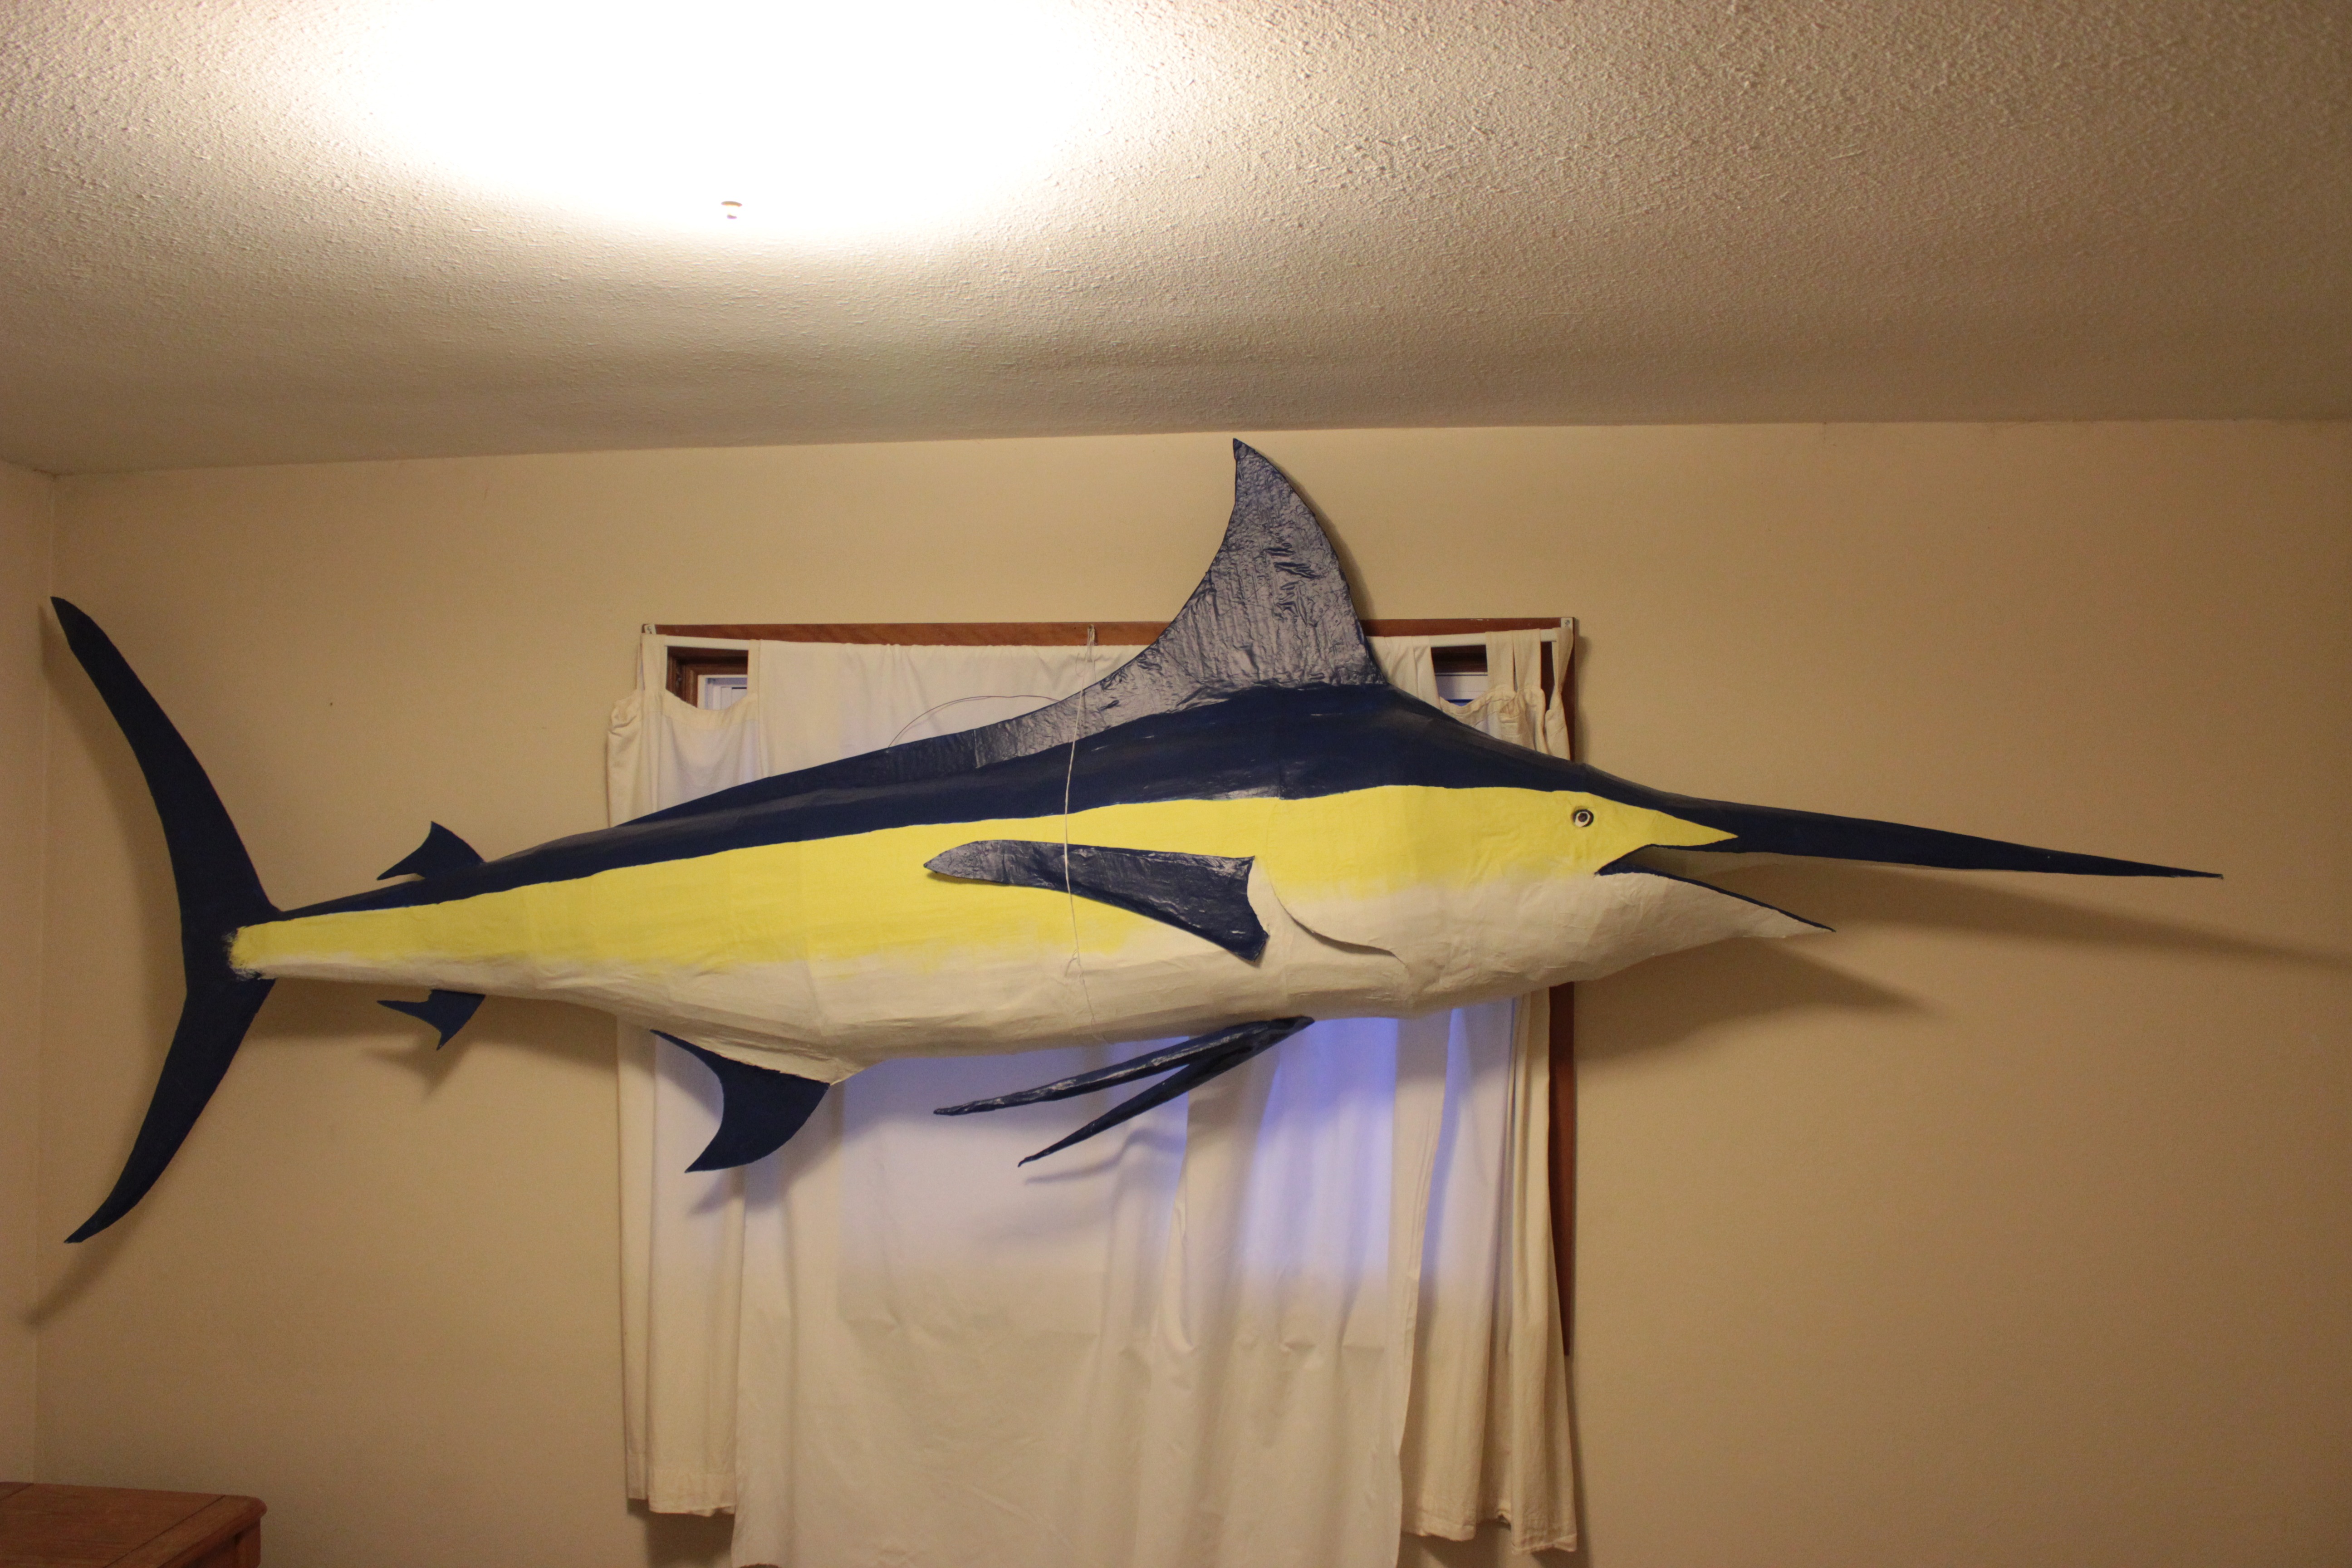 HOW TO BUILD YOUR OWN GIANT BLUE MARLIN ON THE CHEAP